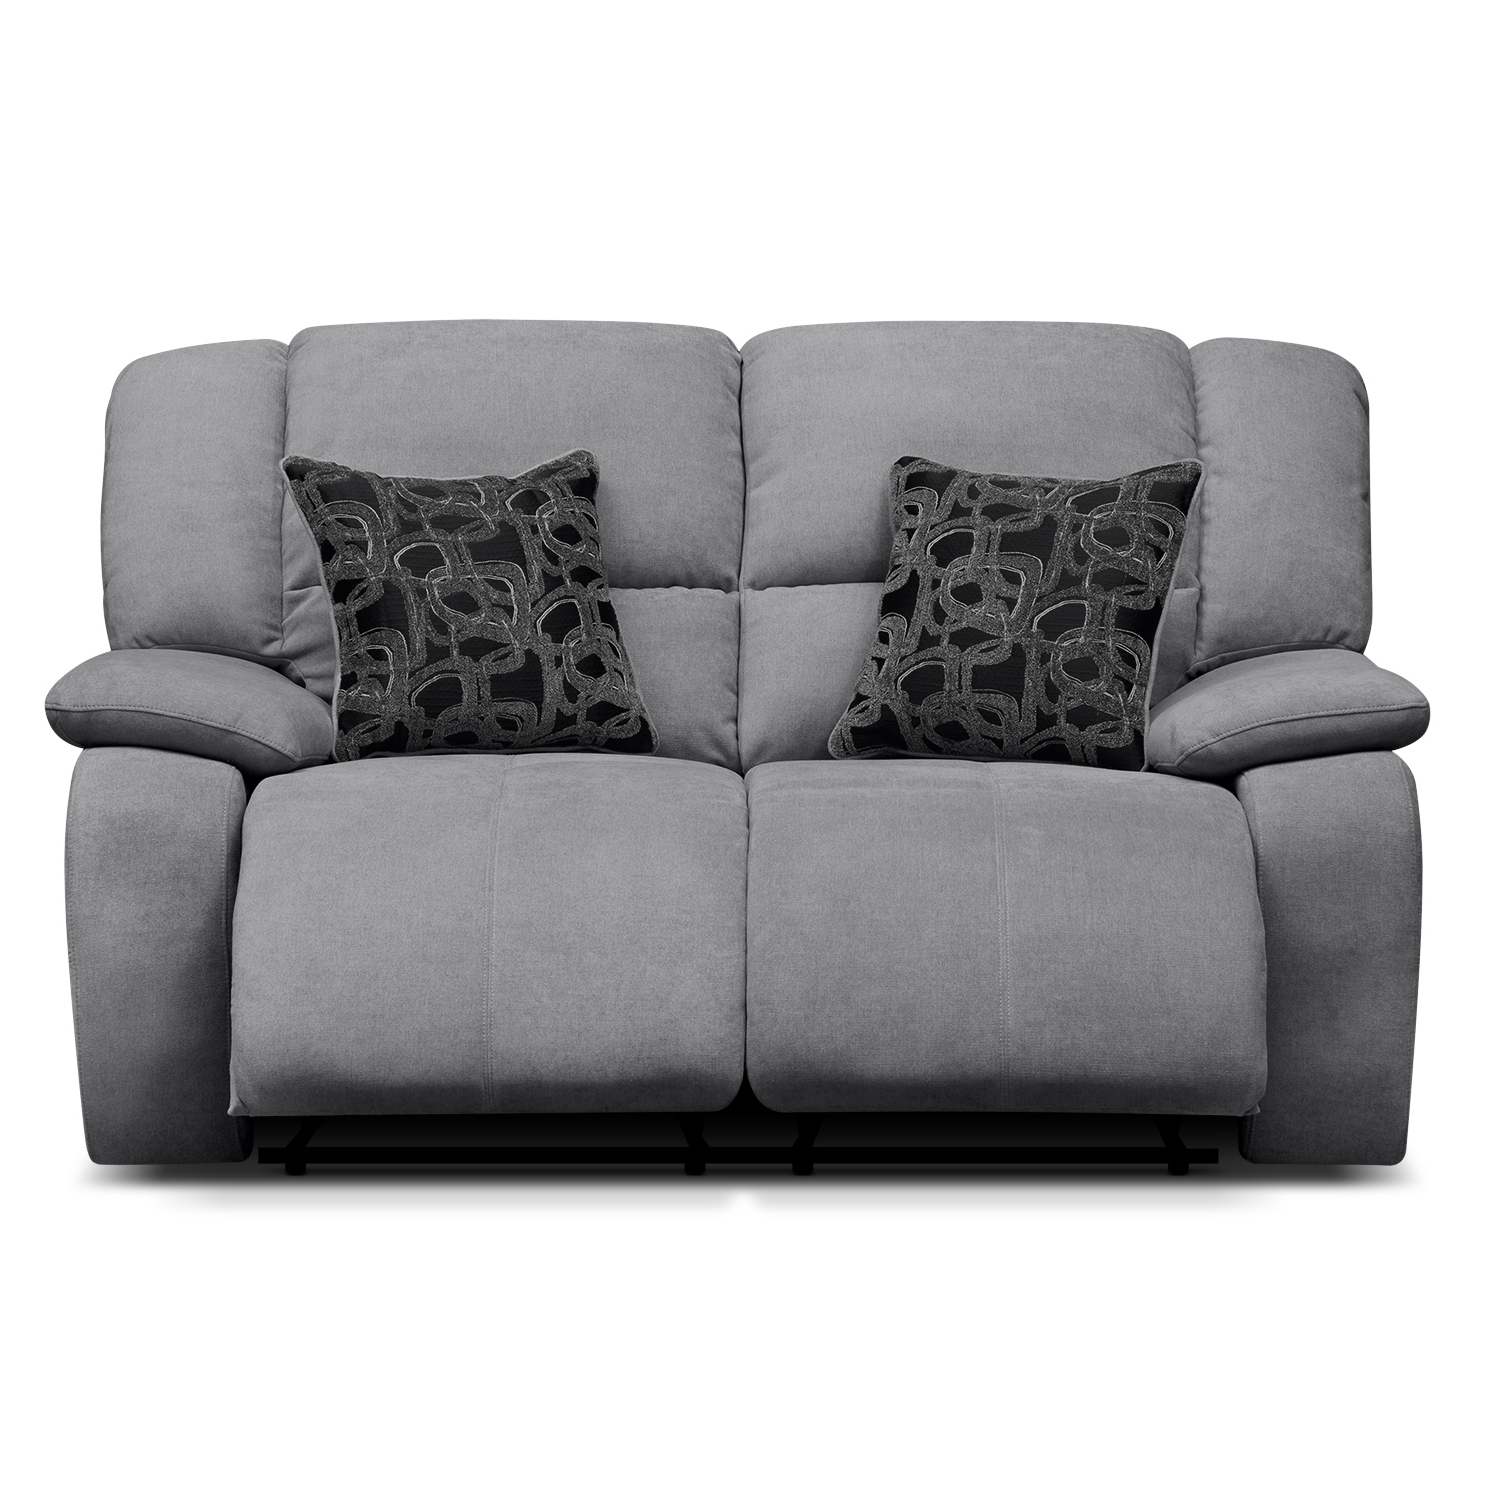 Popular Recliner Sofas With Regard To Media Sofa Recliner Tags : Modern Recliner Sofas Traditional (View 10 of 17)